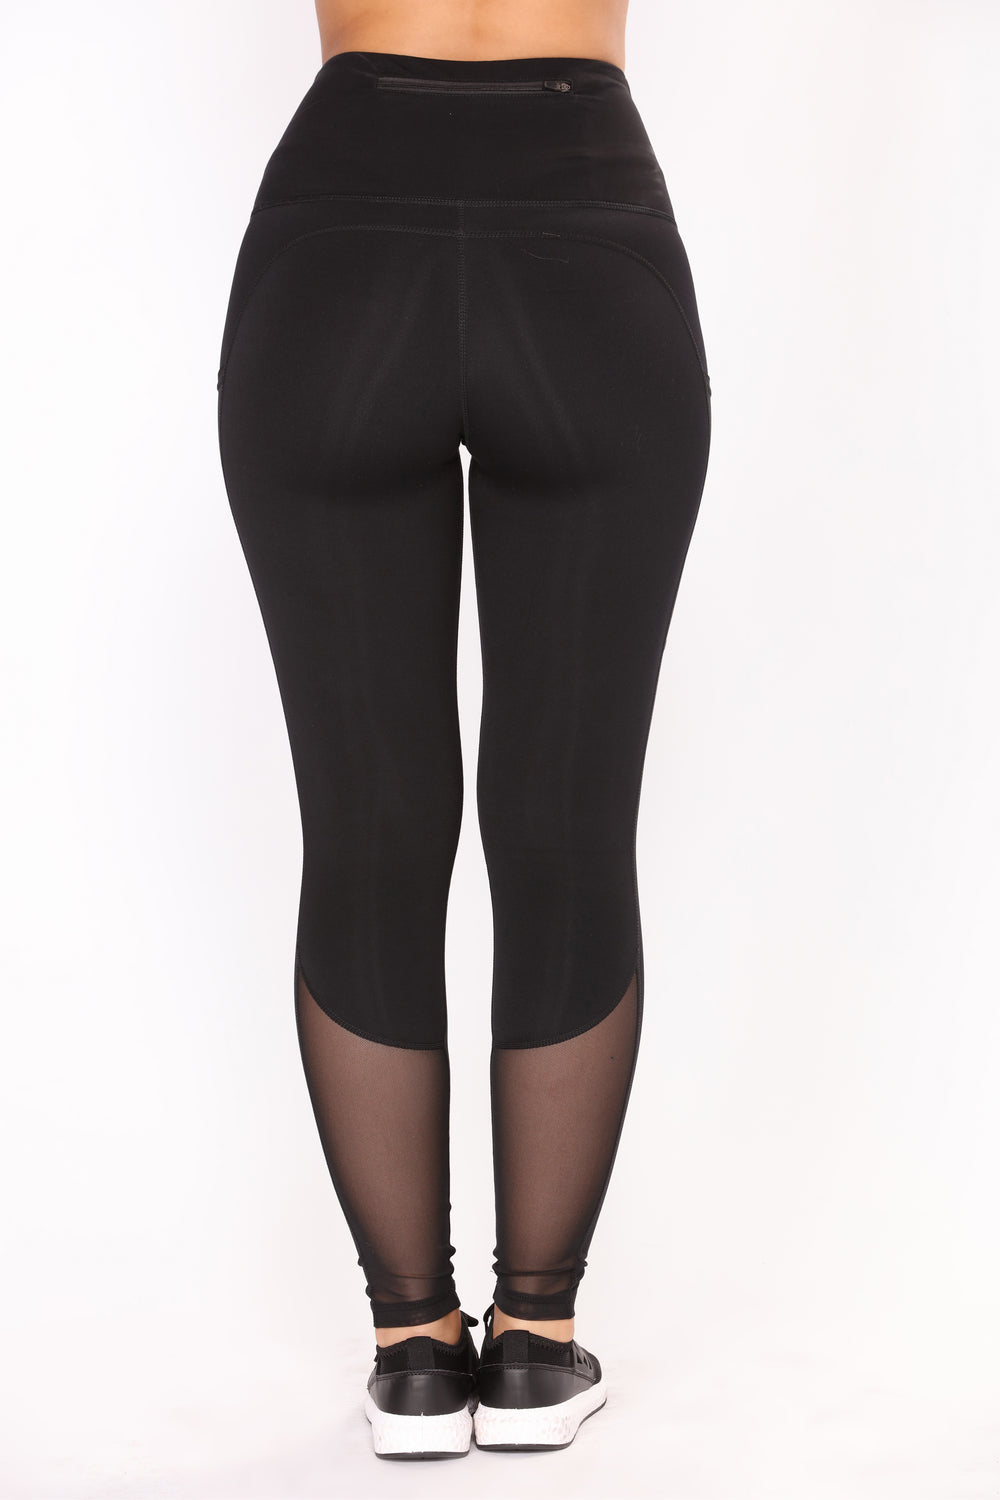 Tiffany Active Leggings - Black